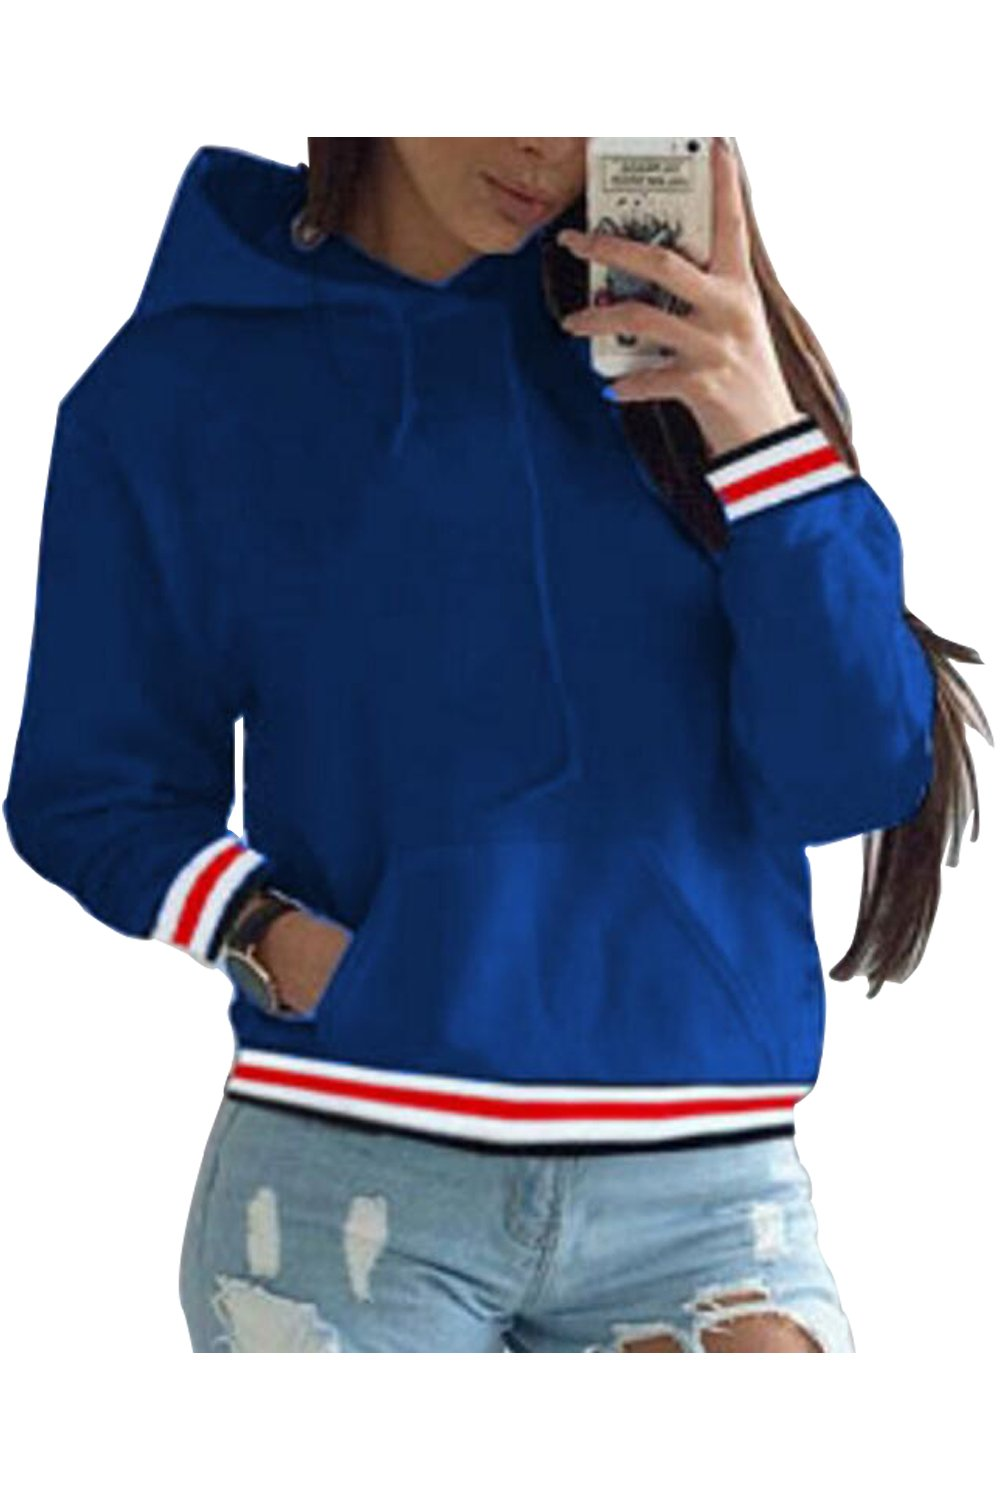 Aifer Women Hangover Sweatshirts Sports Pullover Tops Hoodies With Pockets